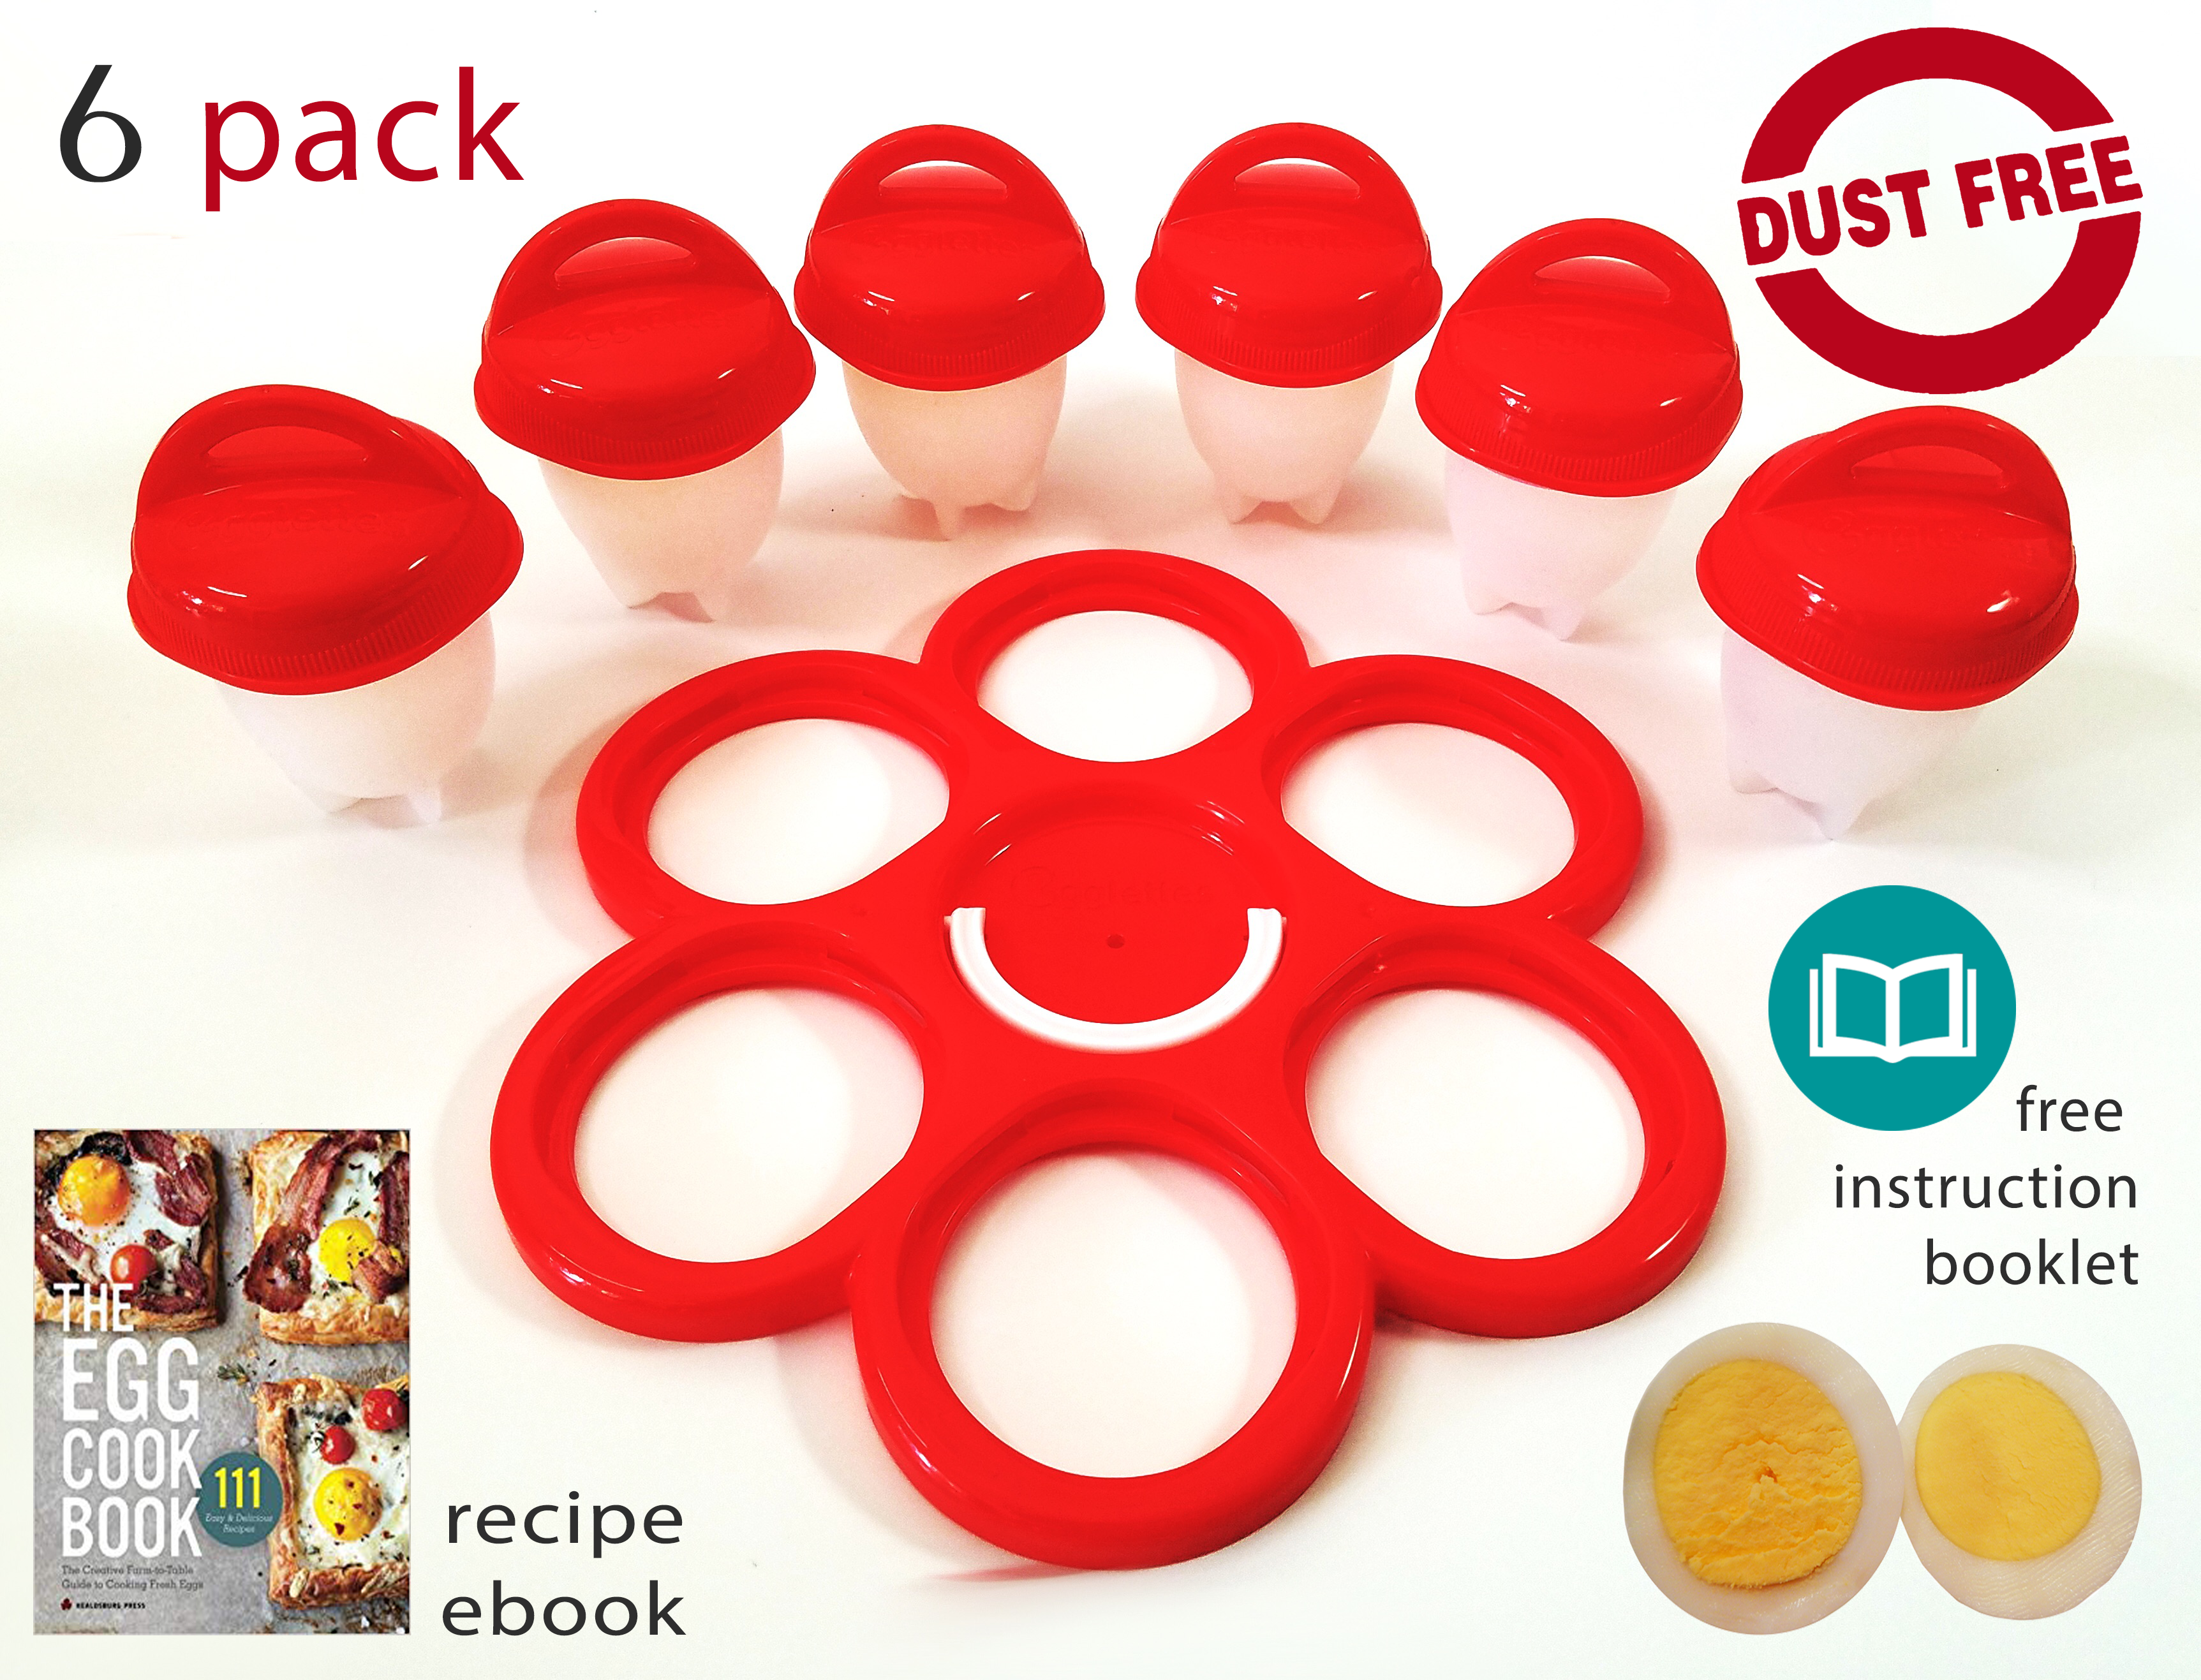 AS SEEN ON TV. Includes Recipe Book Boiled Egg Cooker Hard & Soft ...